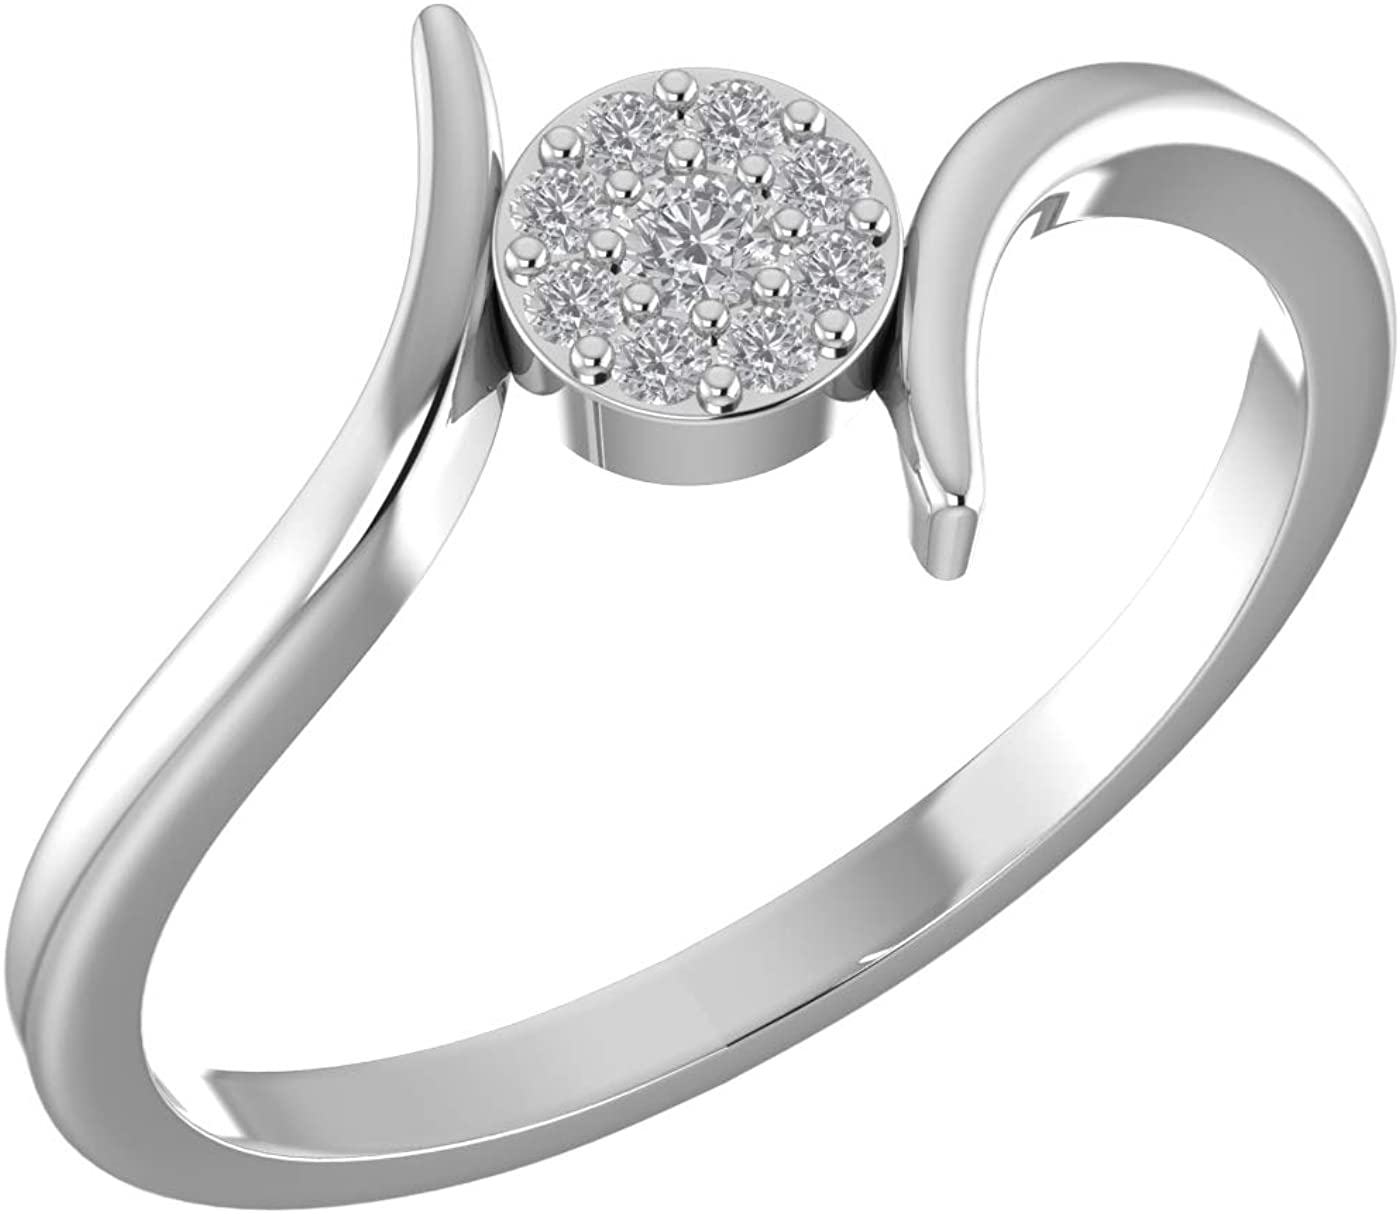 Amayra Diamond Ring 0.1 CTW-9 Natural Round Stones Set in 925 Sterling Silver- Brilliant Cut- Perfect for Bridal Promise Ring,Anniversary,Daily wear or Parties (Color-GH Clarity-VS-SI)